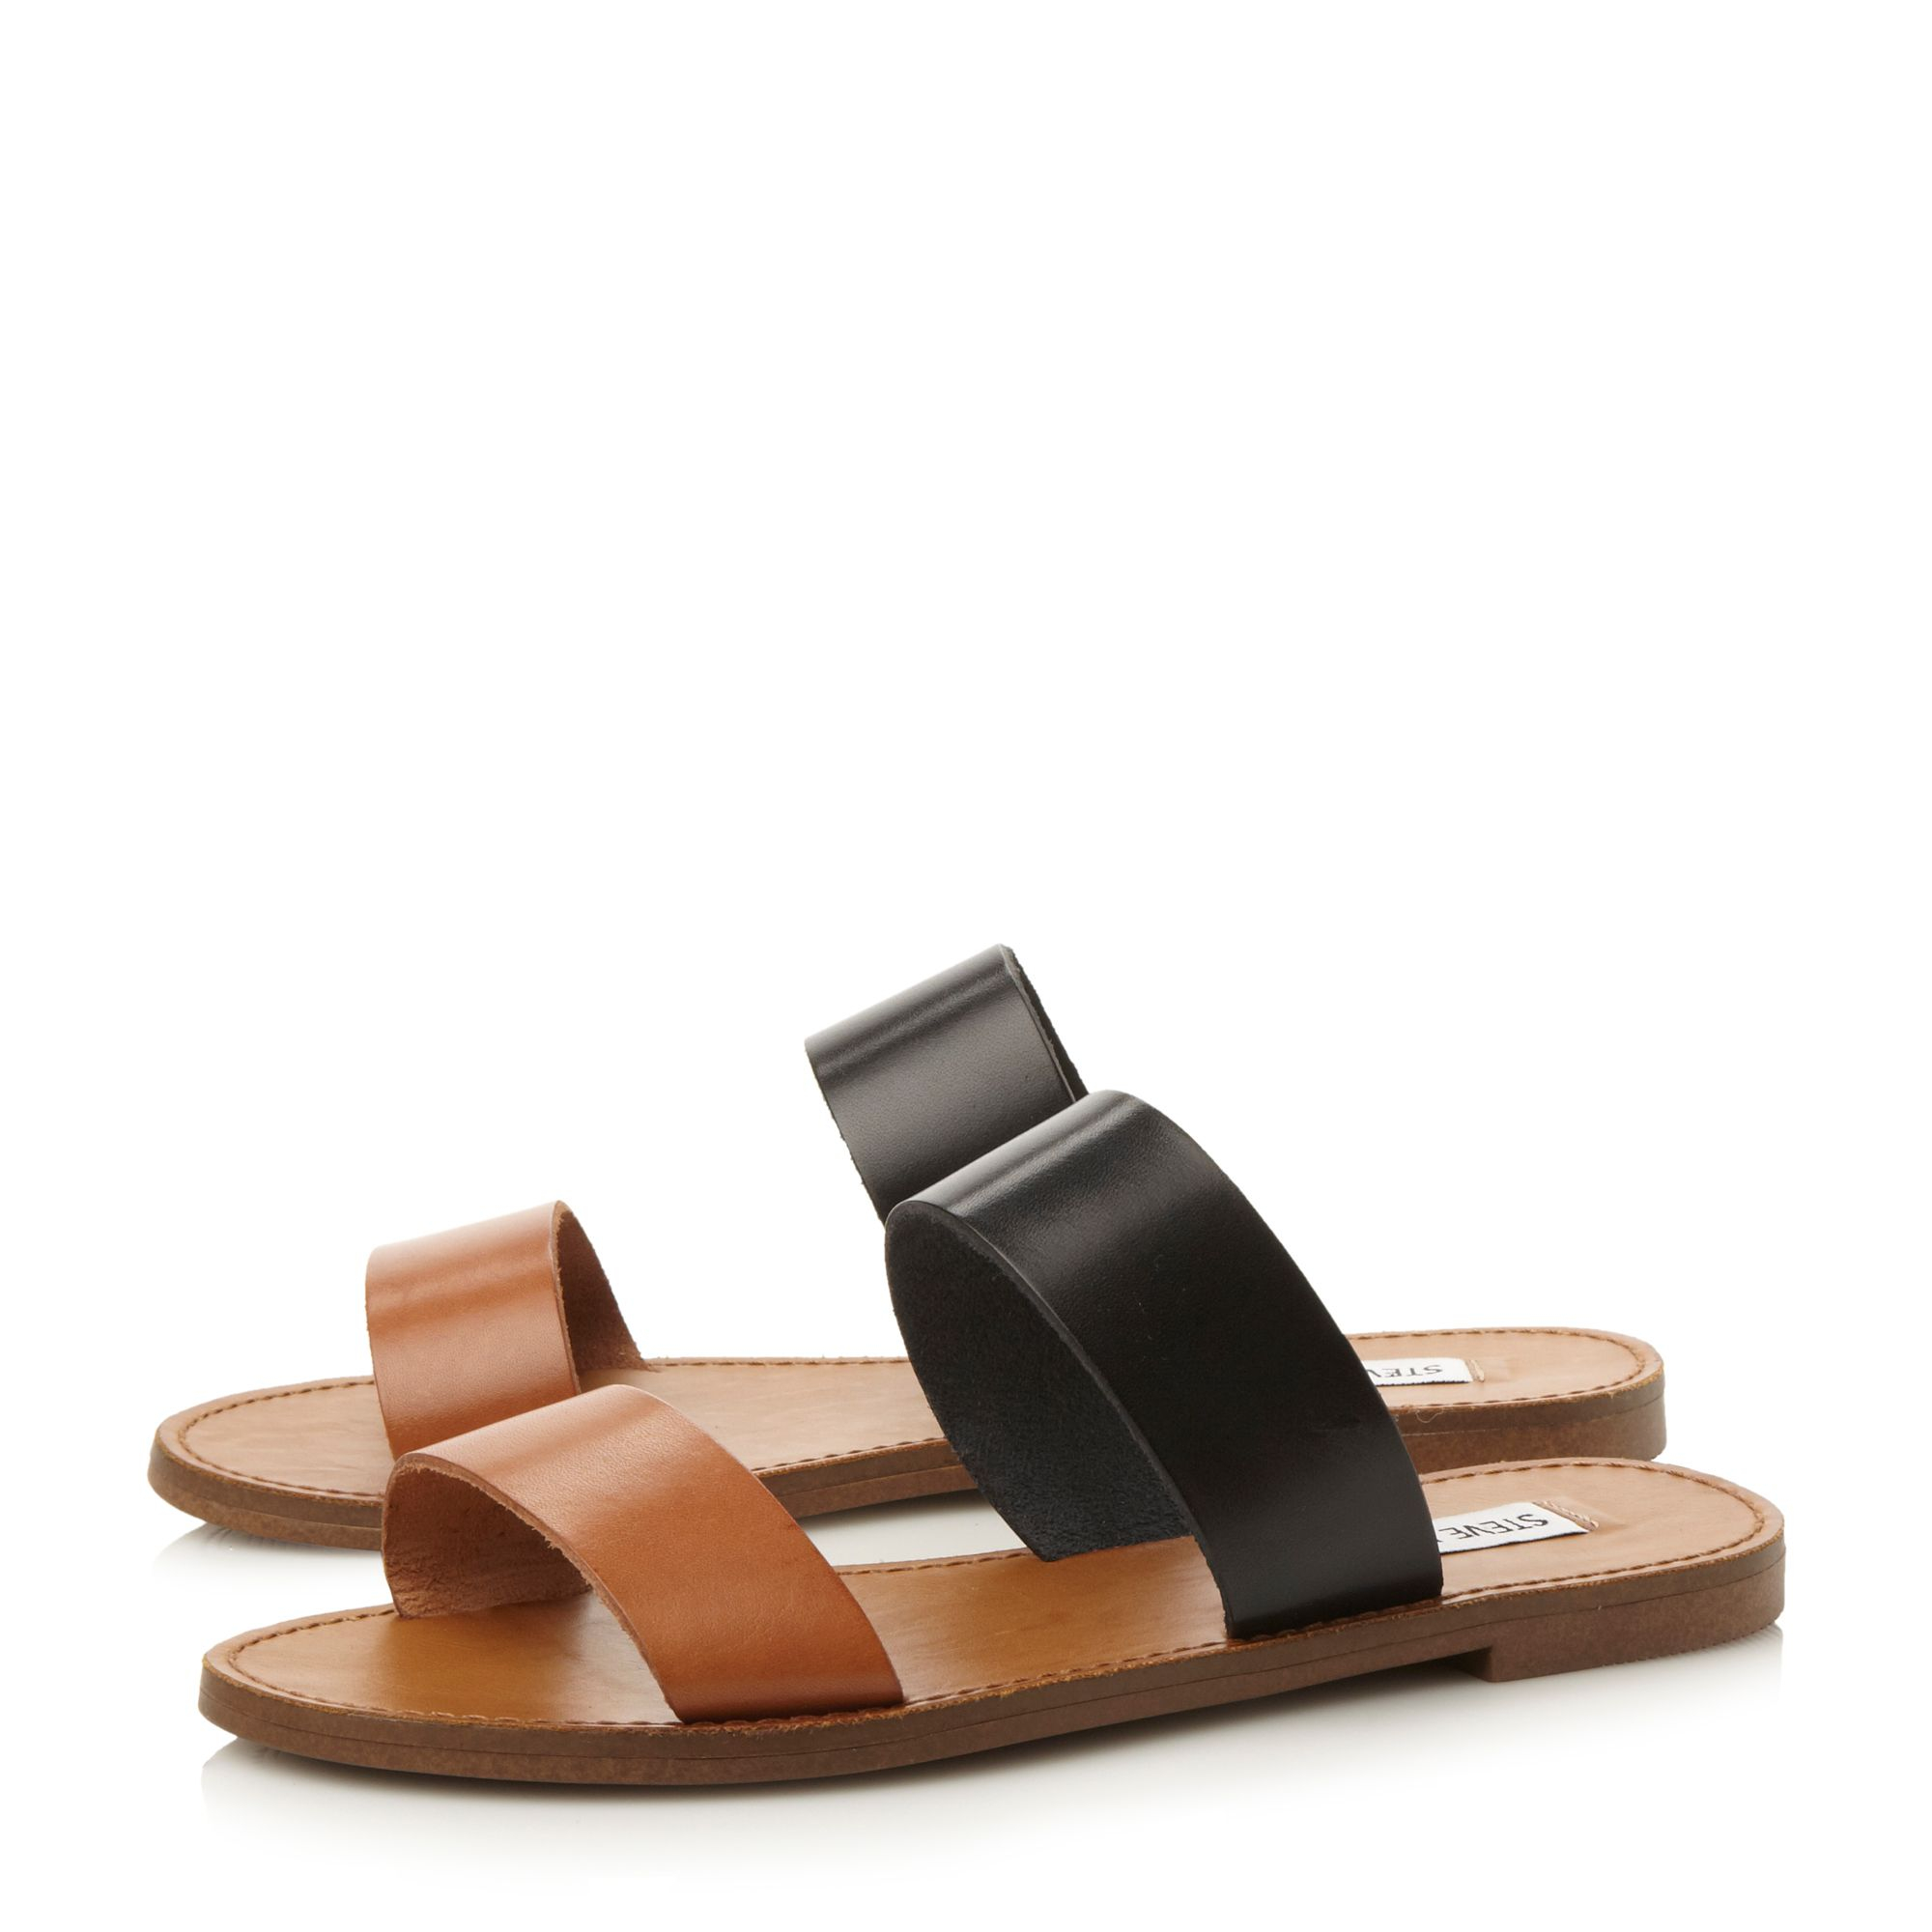 Steve Madden Dbandl Sm Double Strap Sliders In Brown Lyst